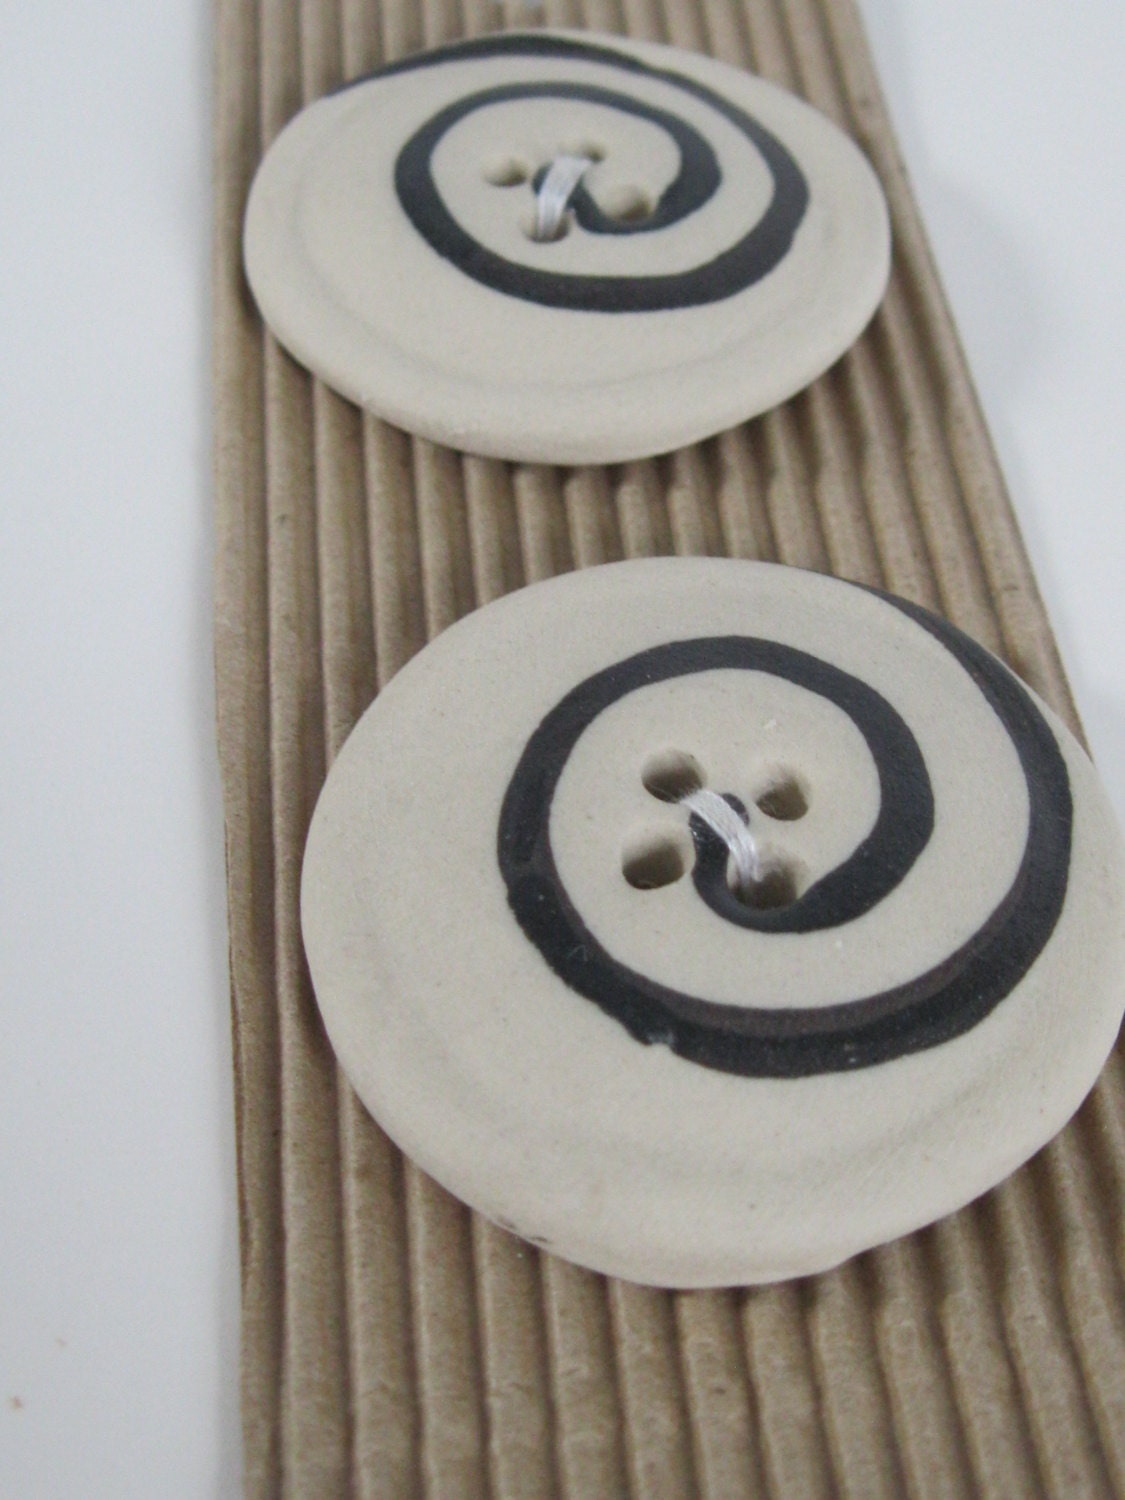 Hand Made Buttons from Africa - Black and Cream - 2 Buttons - FabricFascination